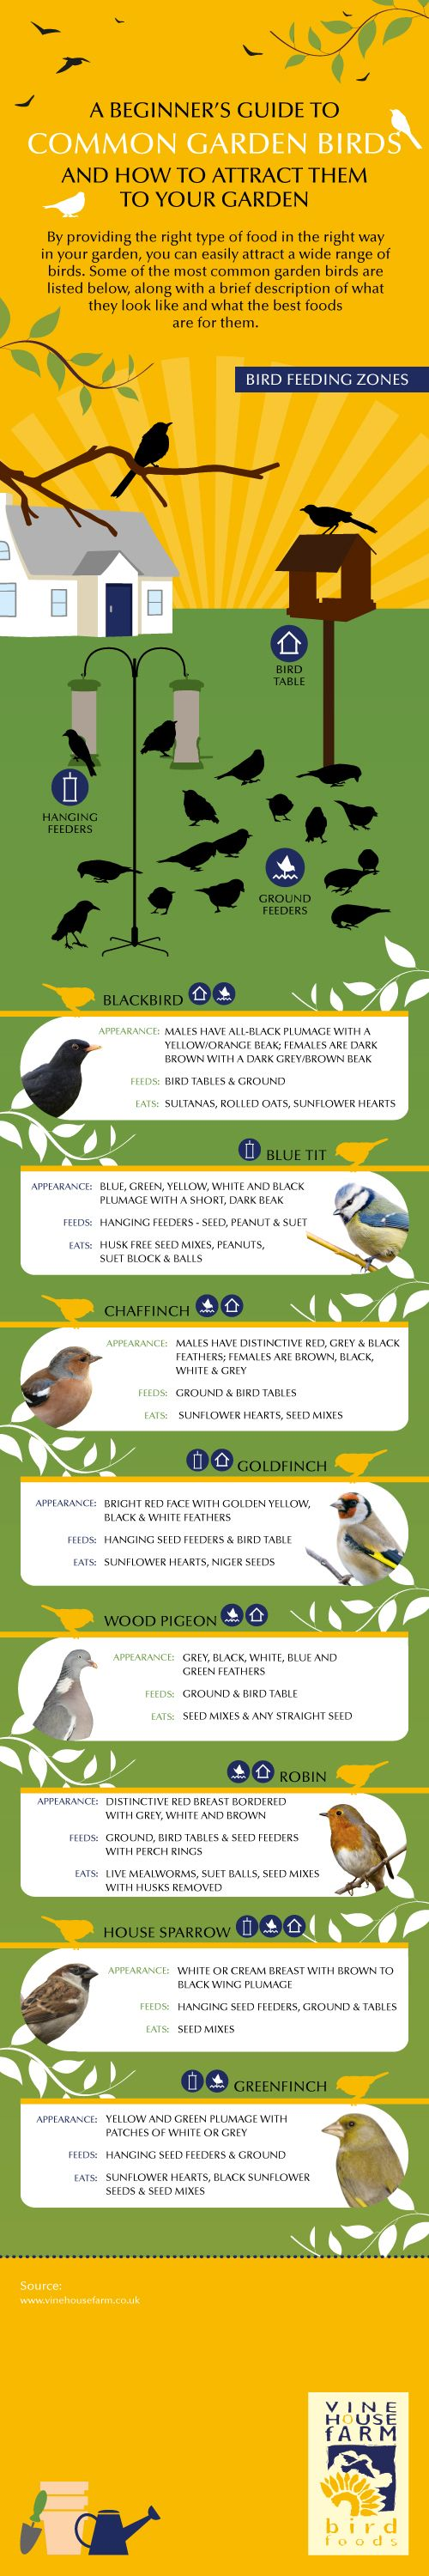 Infographic on attracting common garden birds